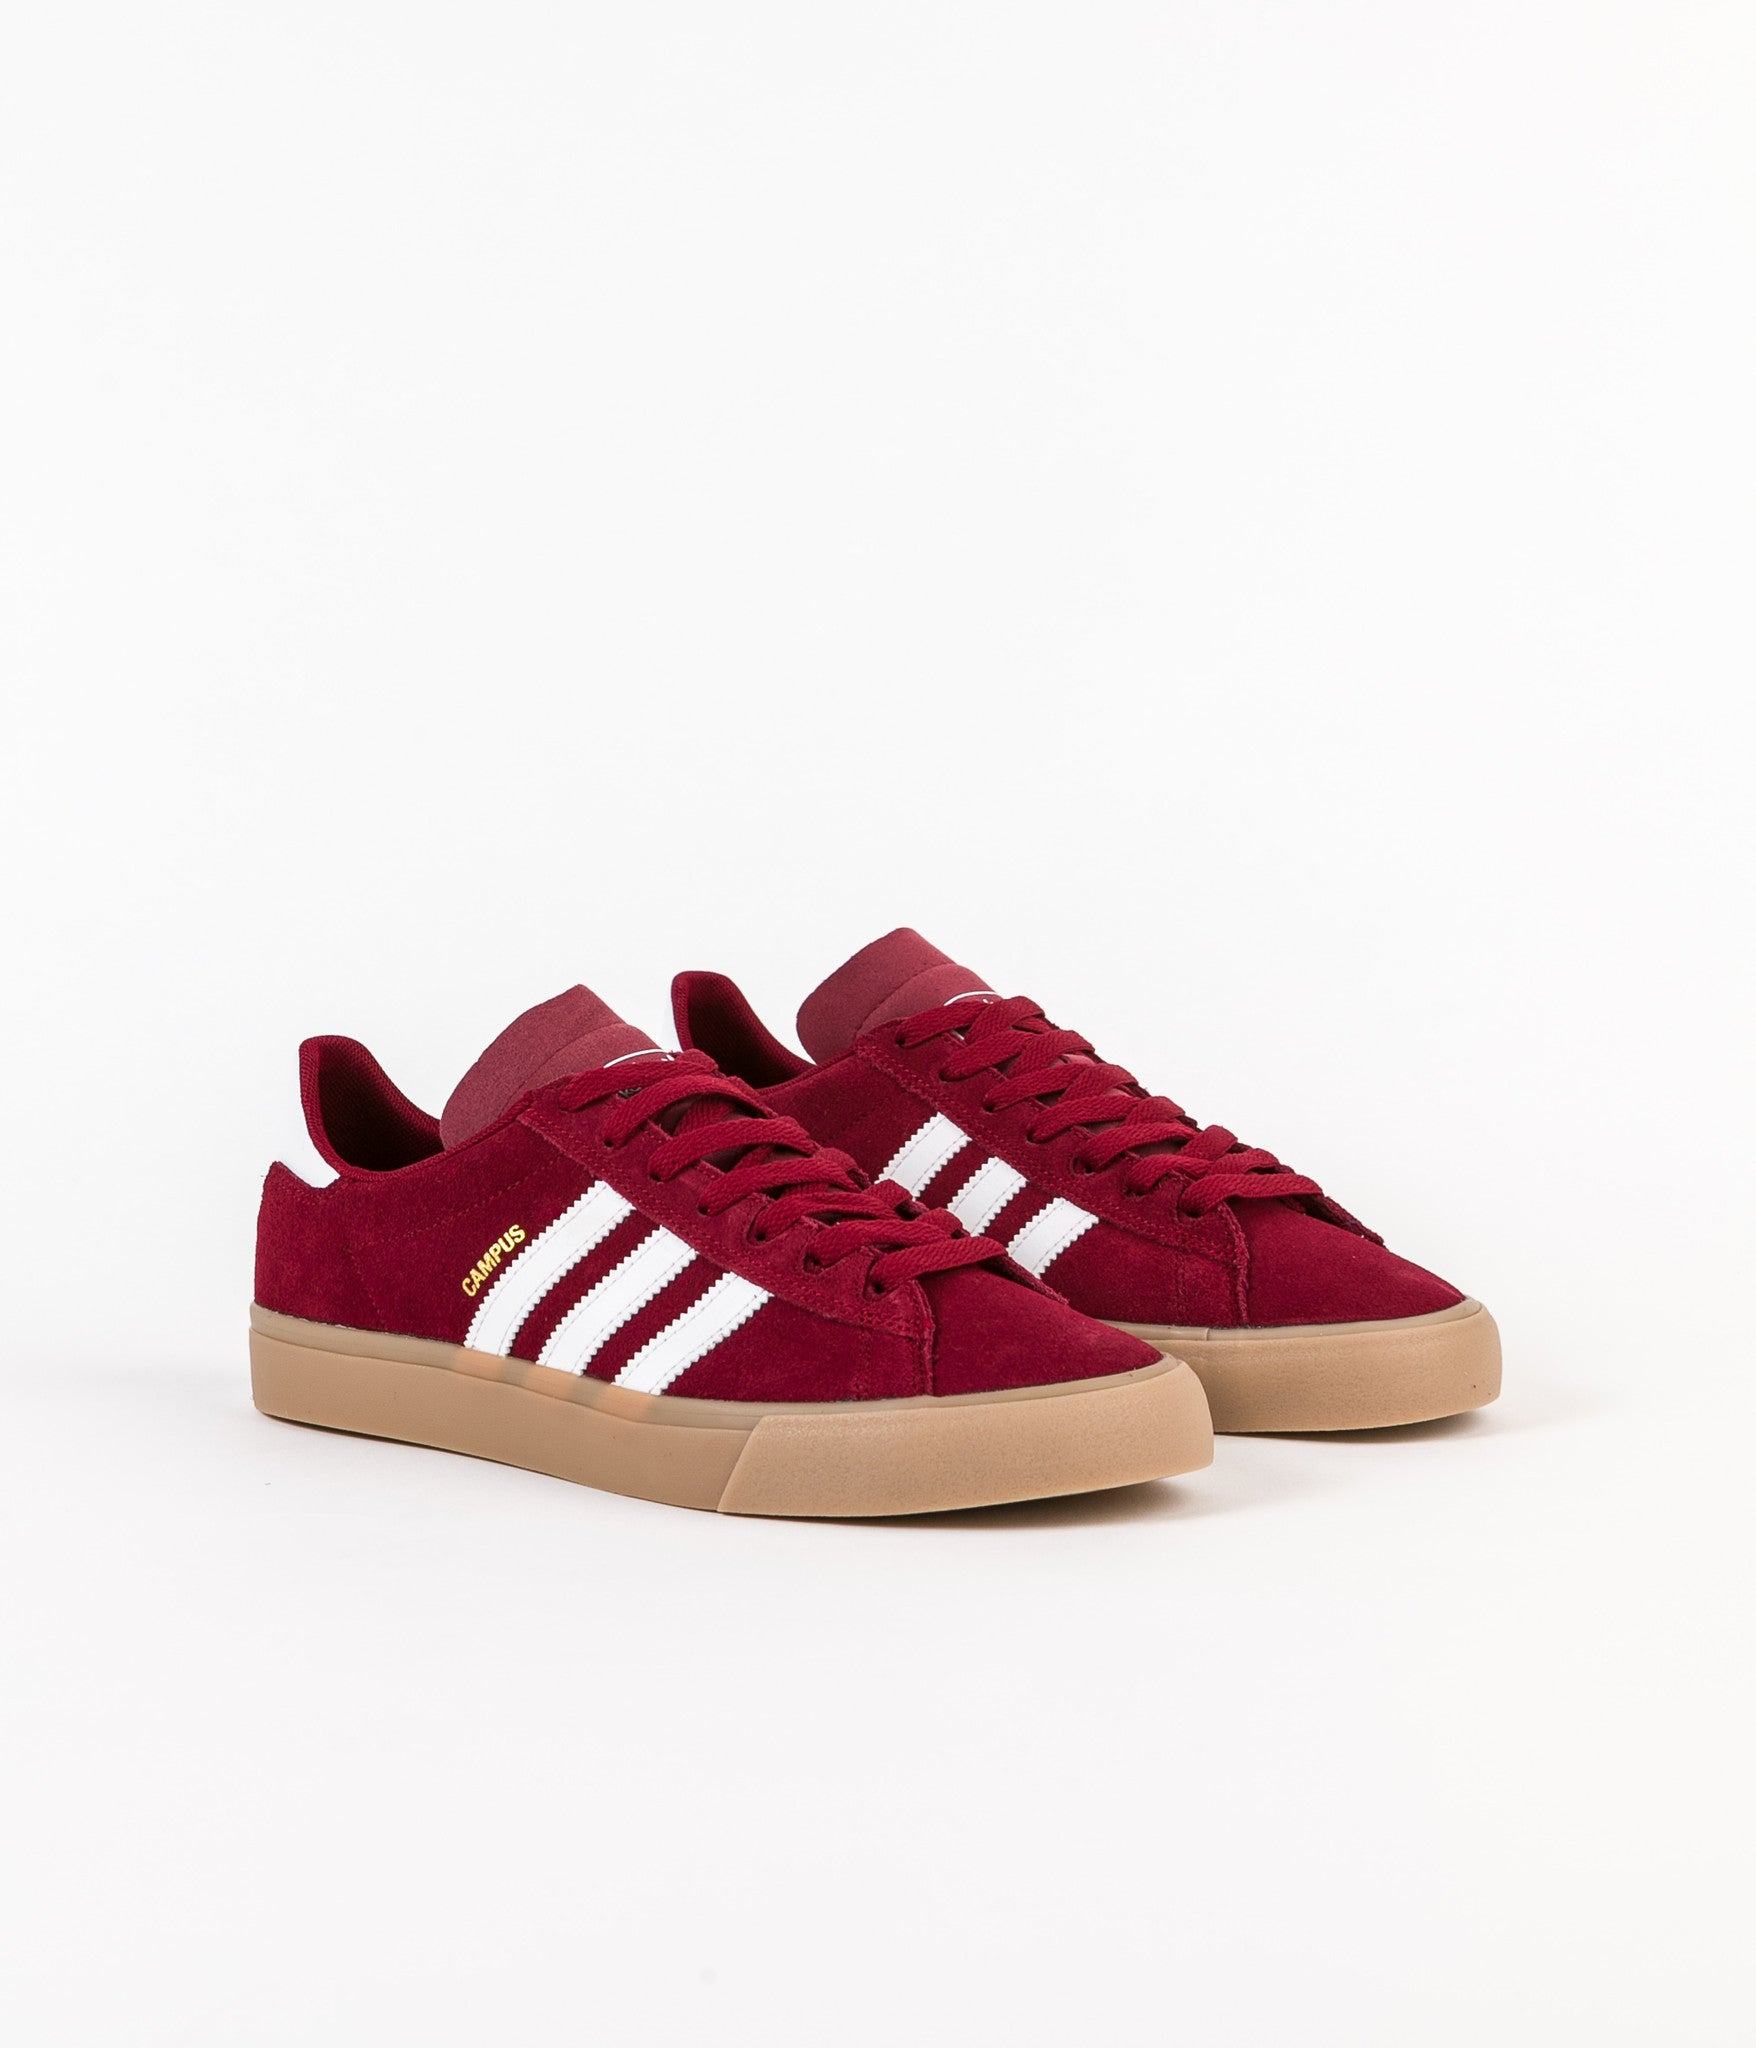 new styles cde77 735d8 ... Adidas Campus Vulc II Adv Shoes - Collegiate Burgundy   White   Gum4 ...